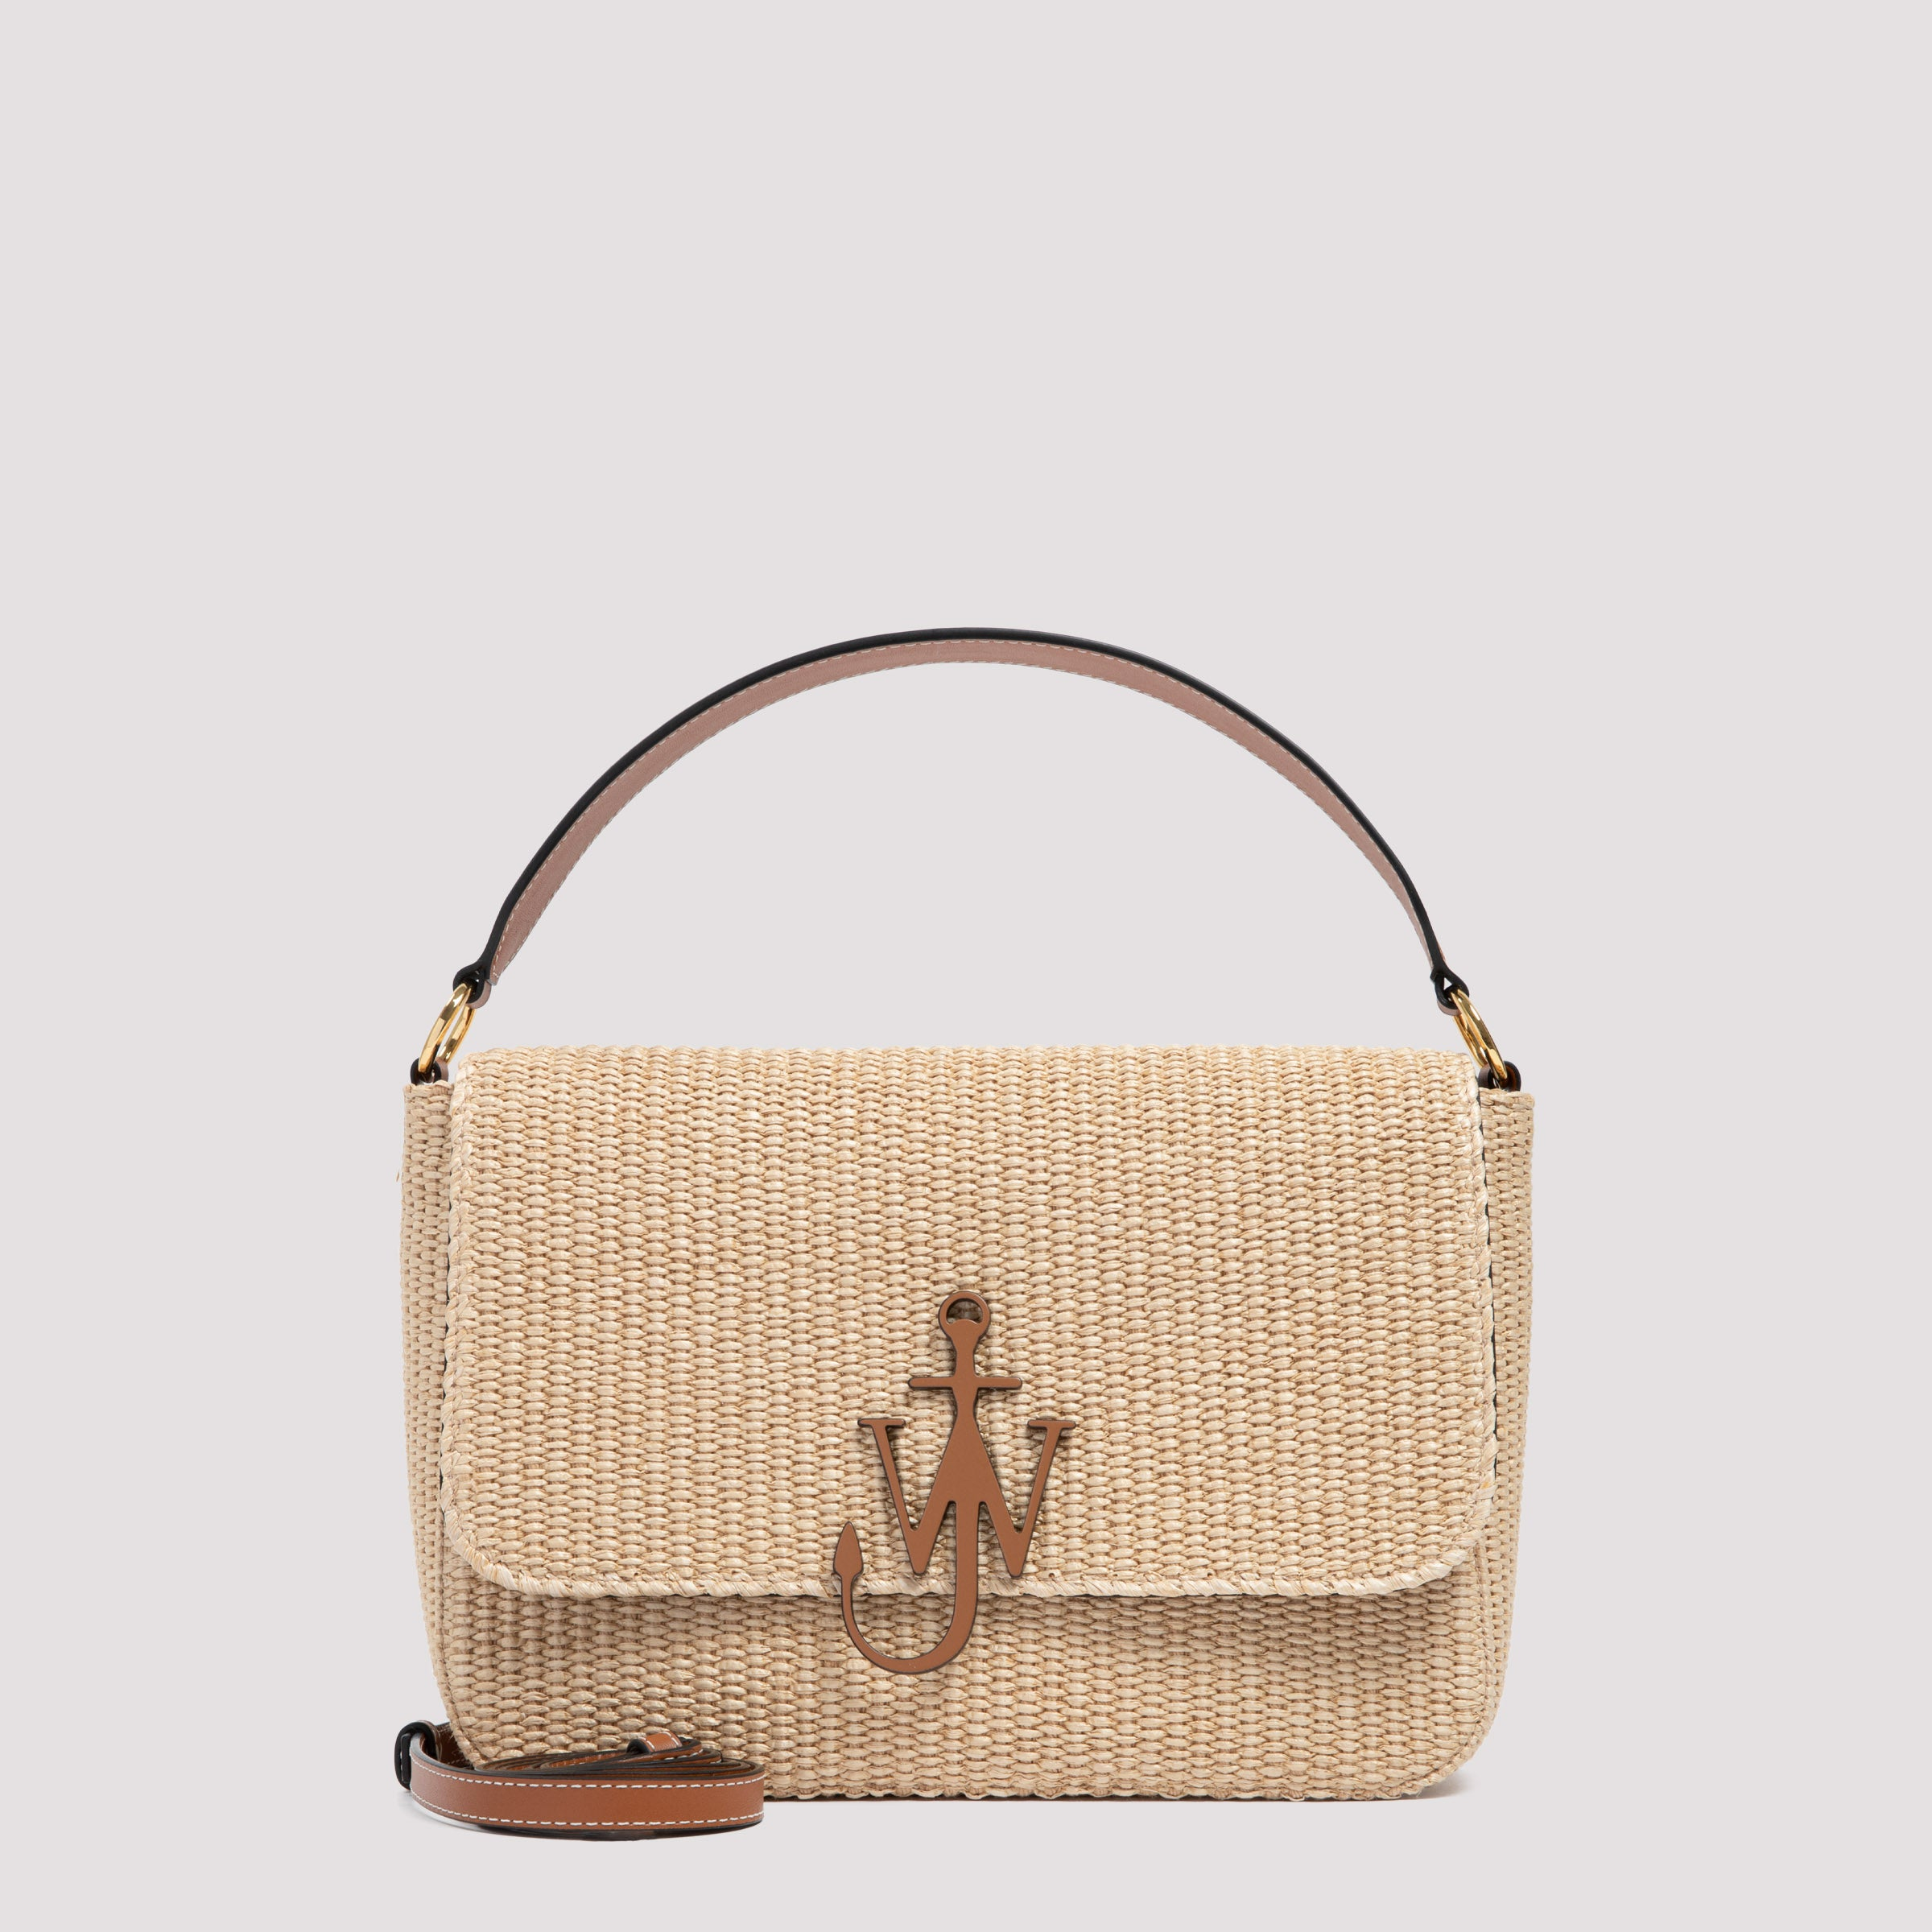 Jw Anderson Bags JW ANDERSON ANCHOR WOVEN TOTE BAG